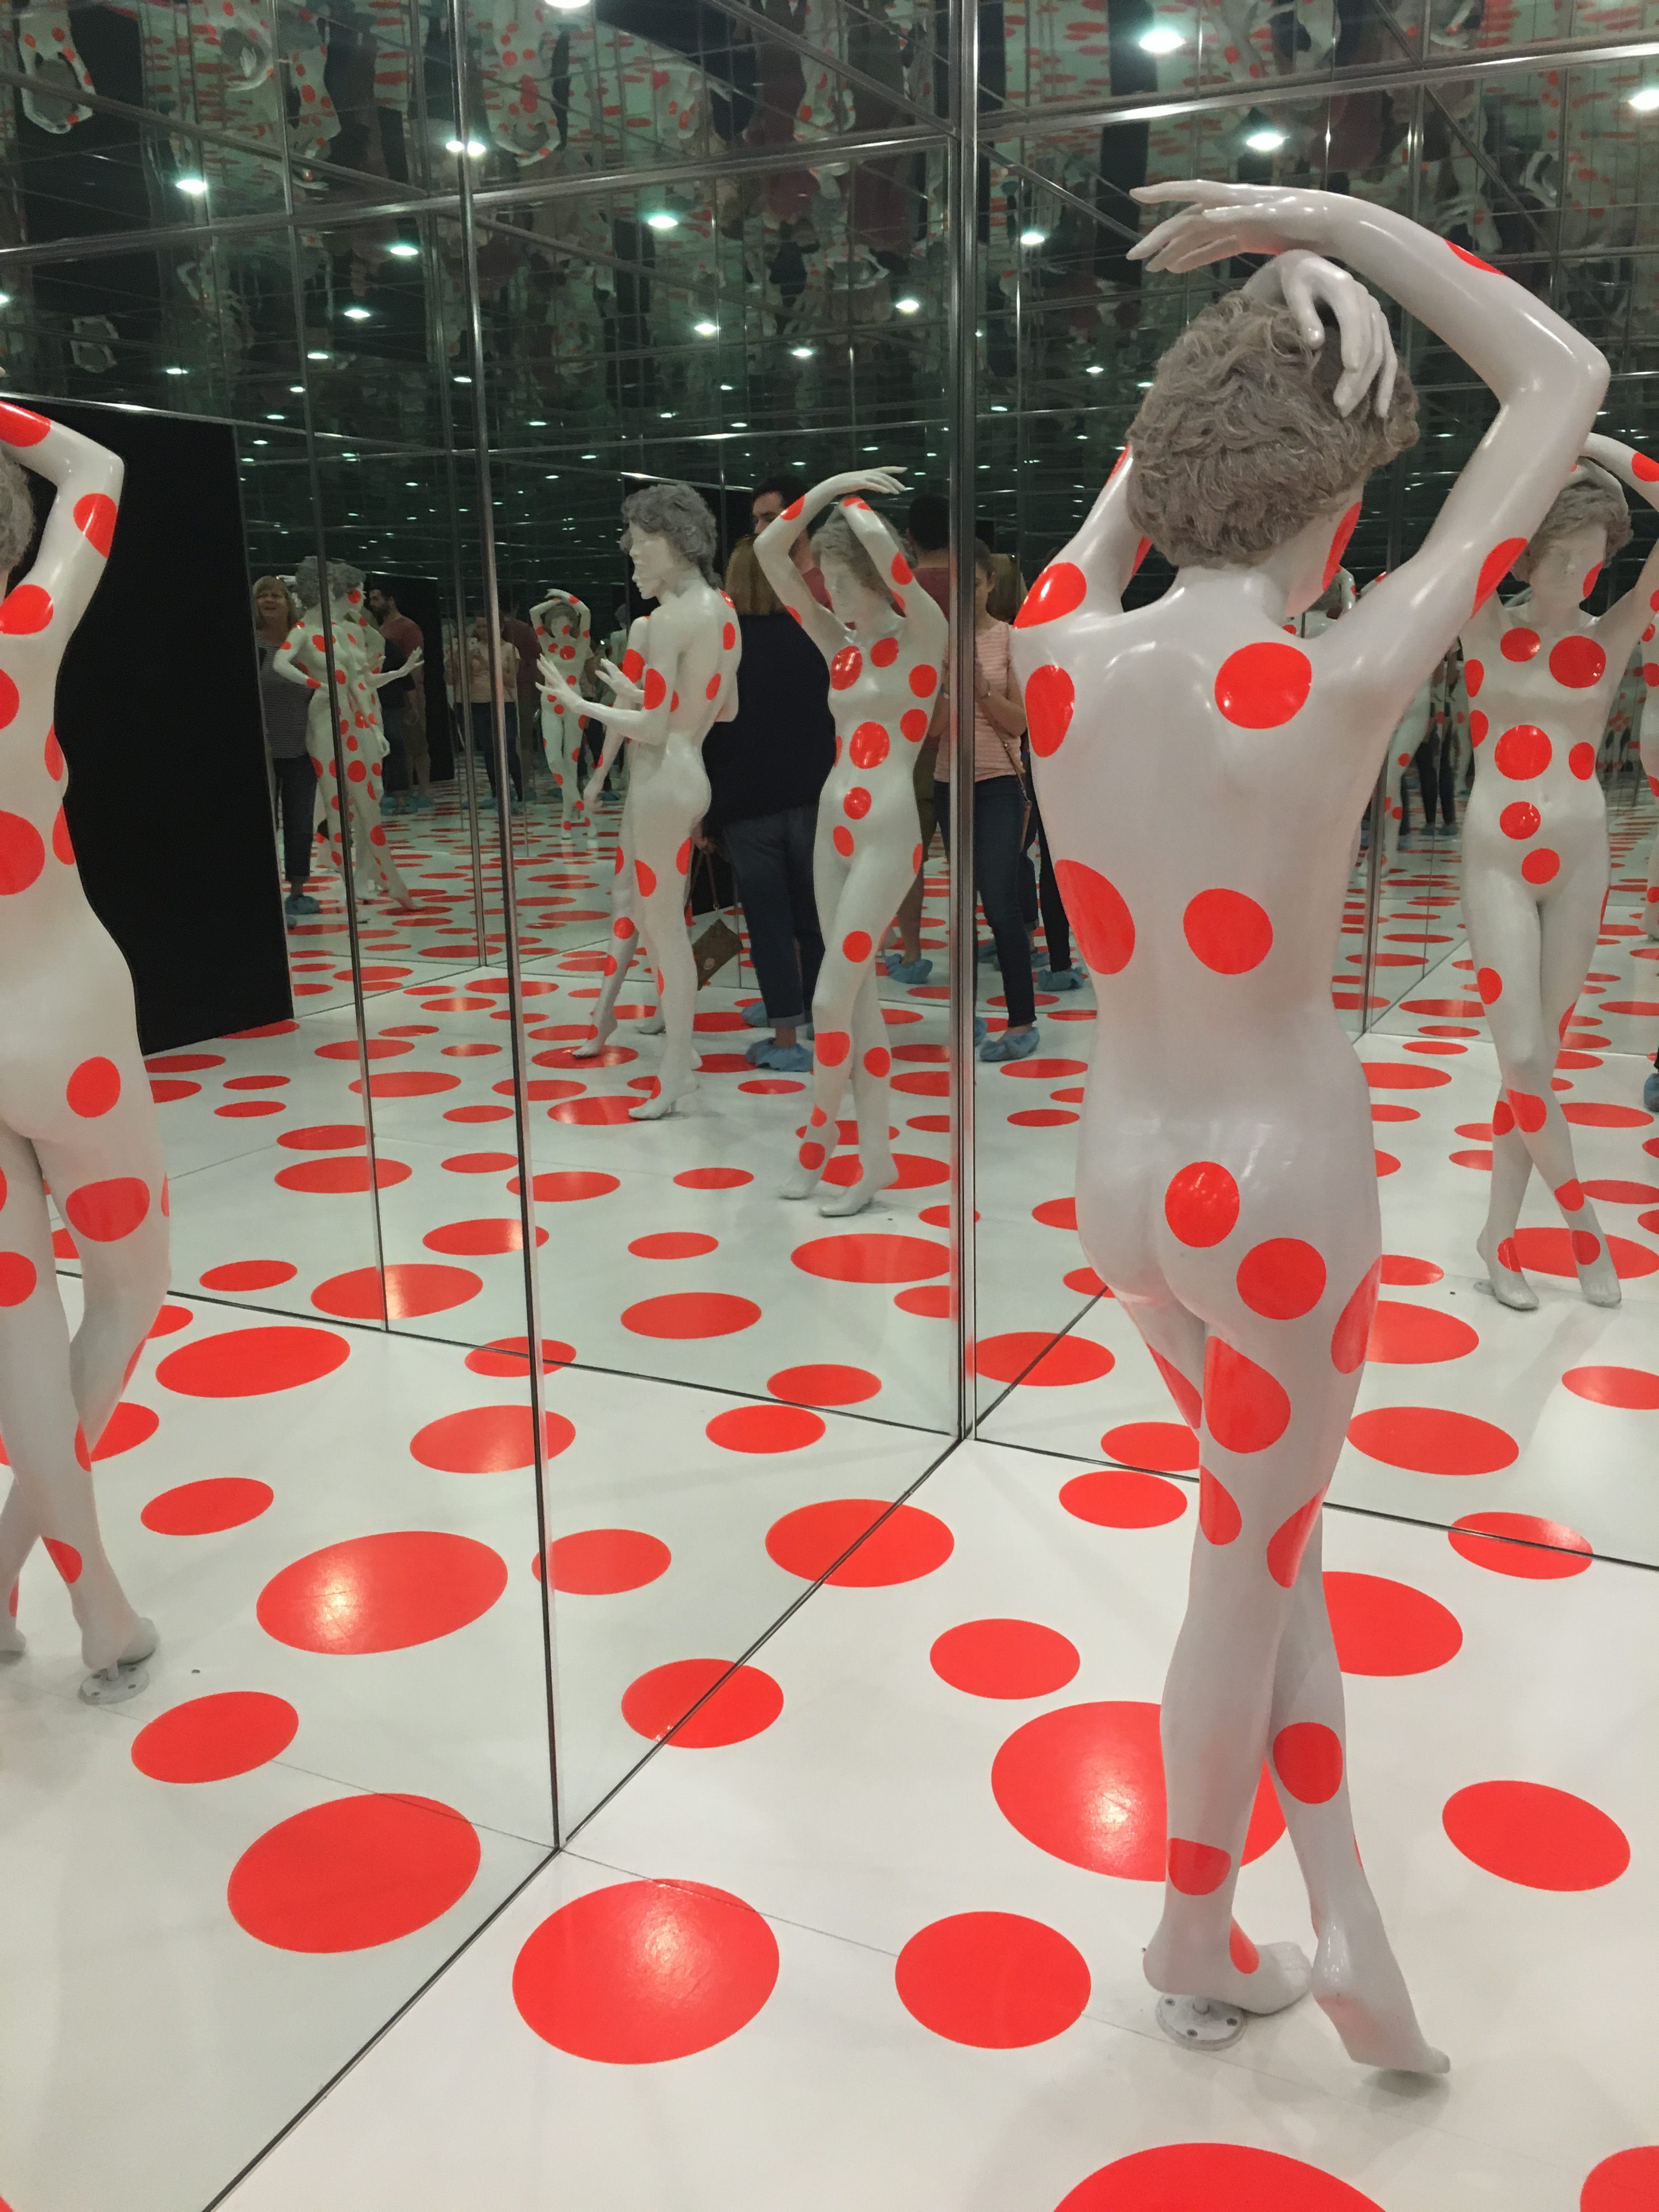 Mattress Factory Image.JPG